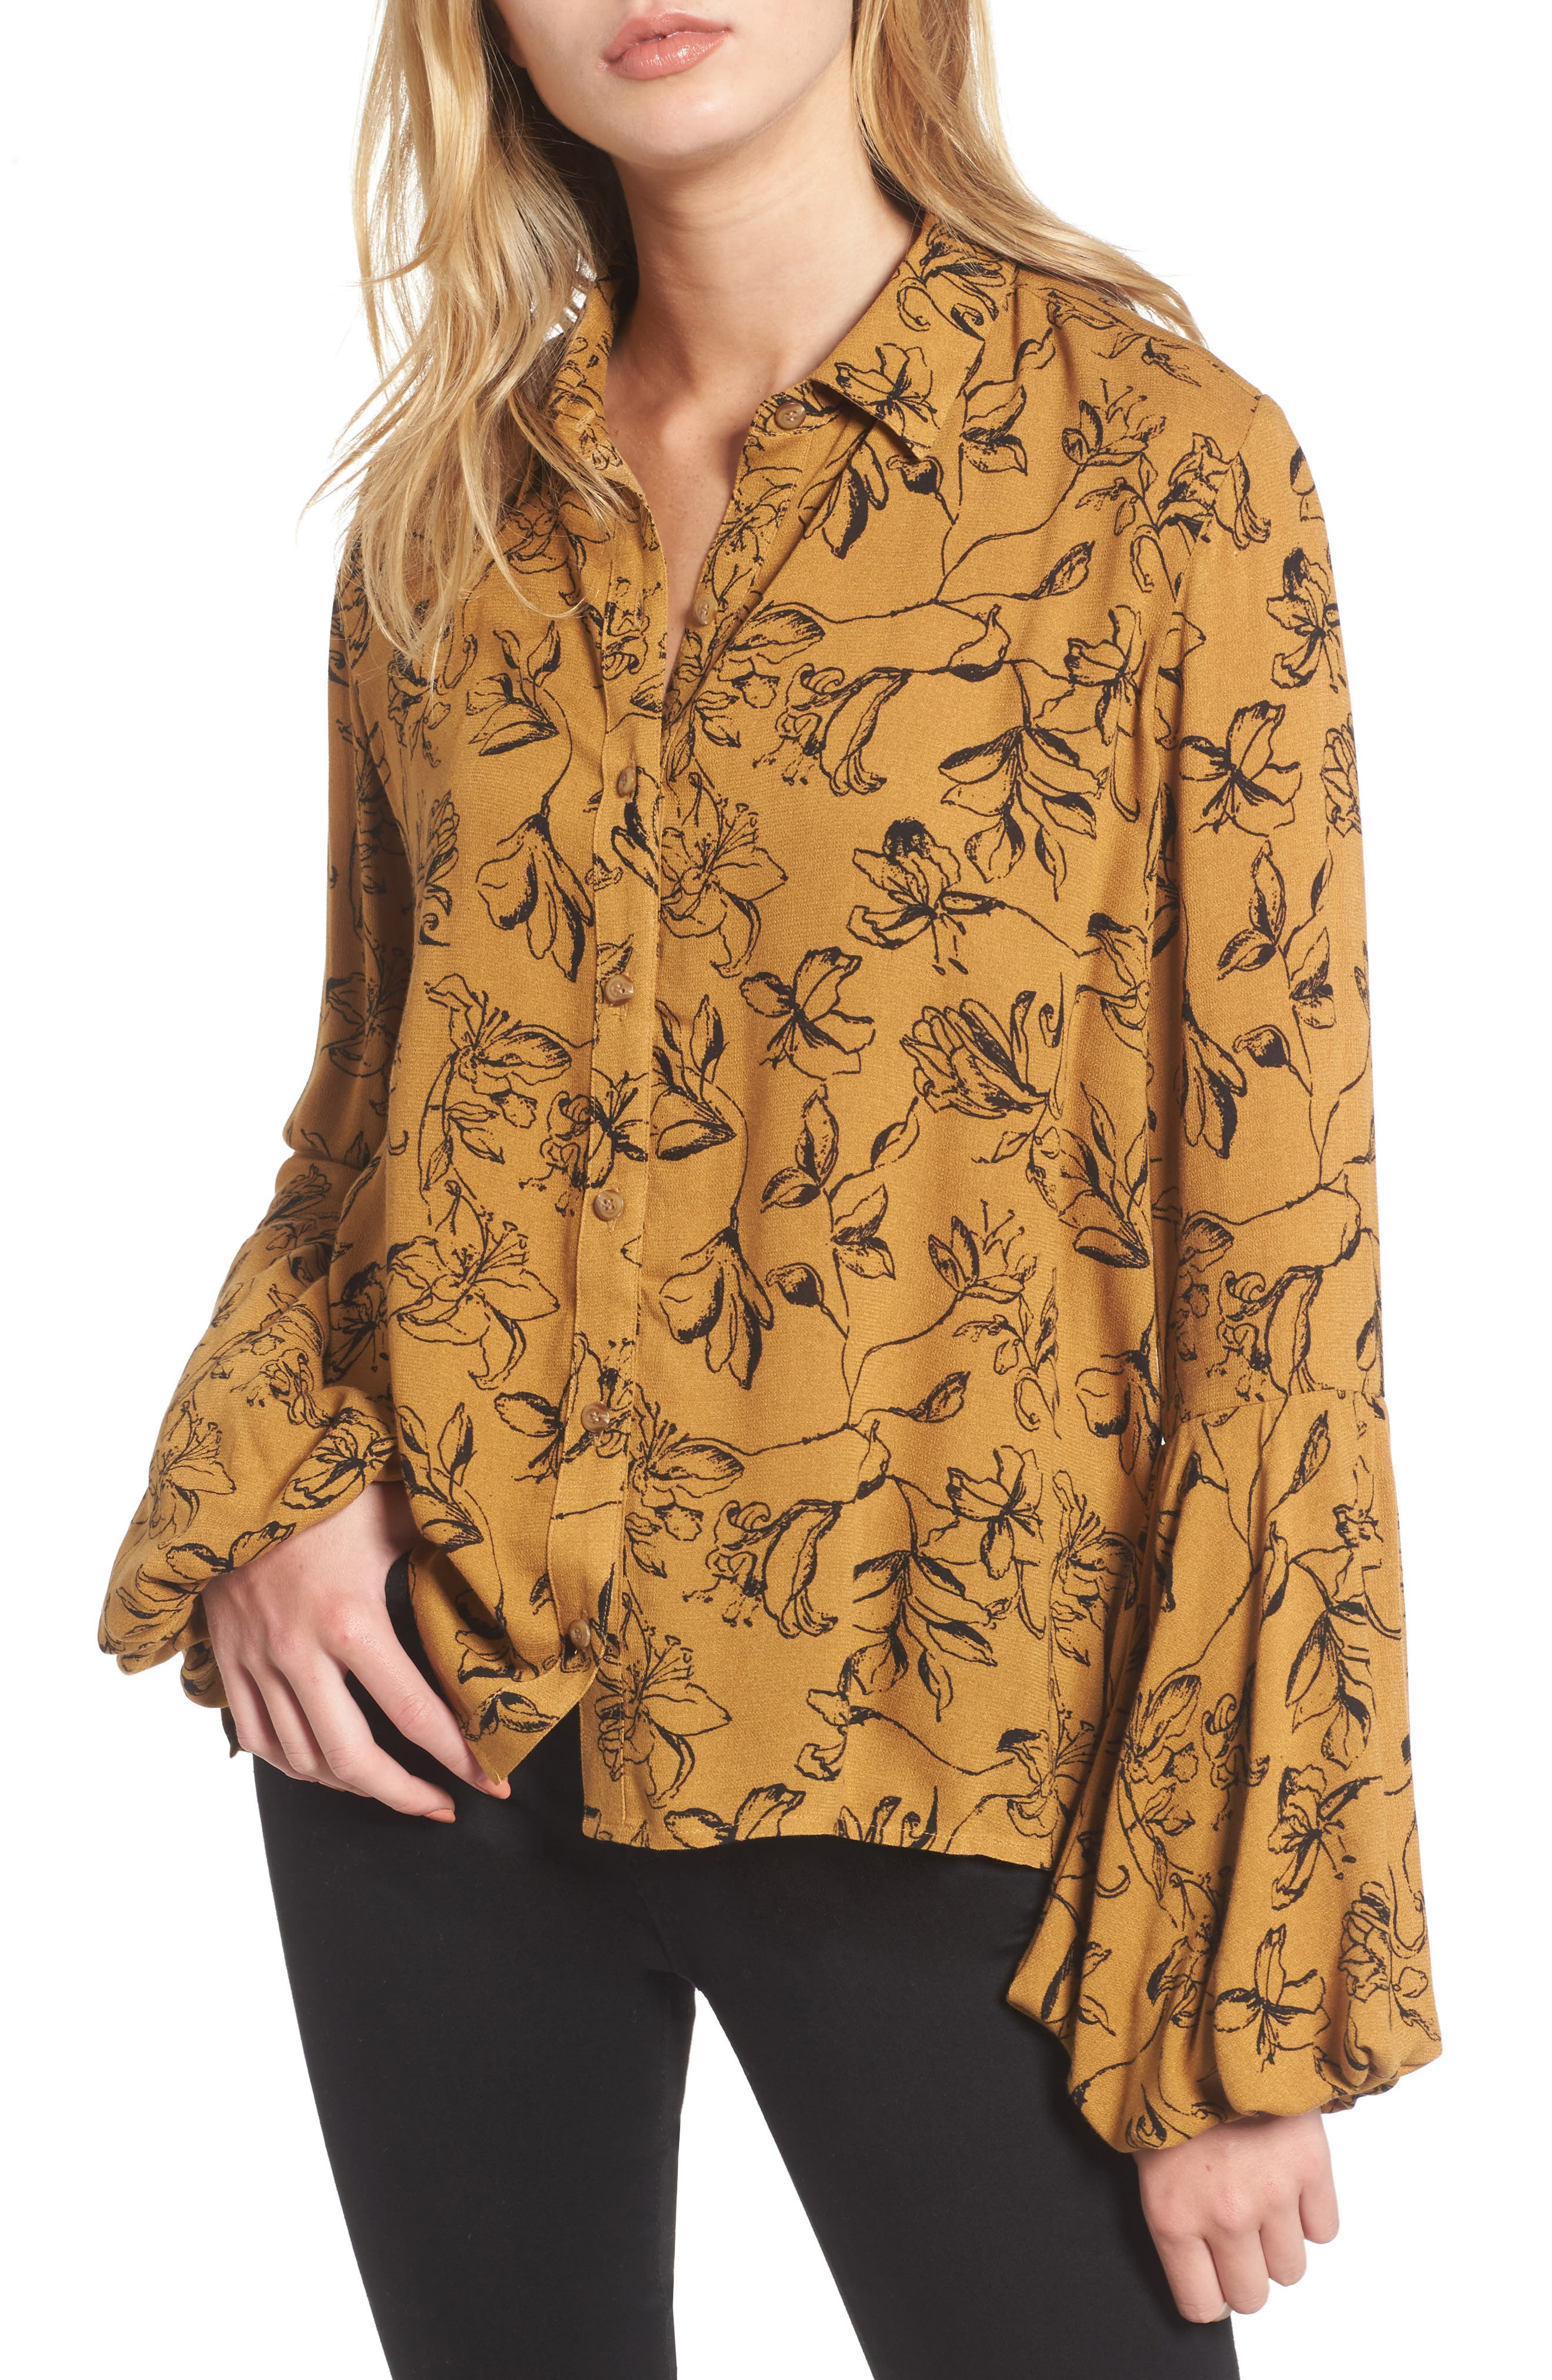 Balloon Sleeve Top,                             Main thumbnail 1, color,                             Brown Cattail Lily Sketch